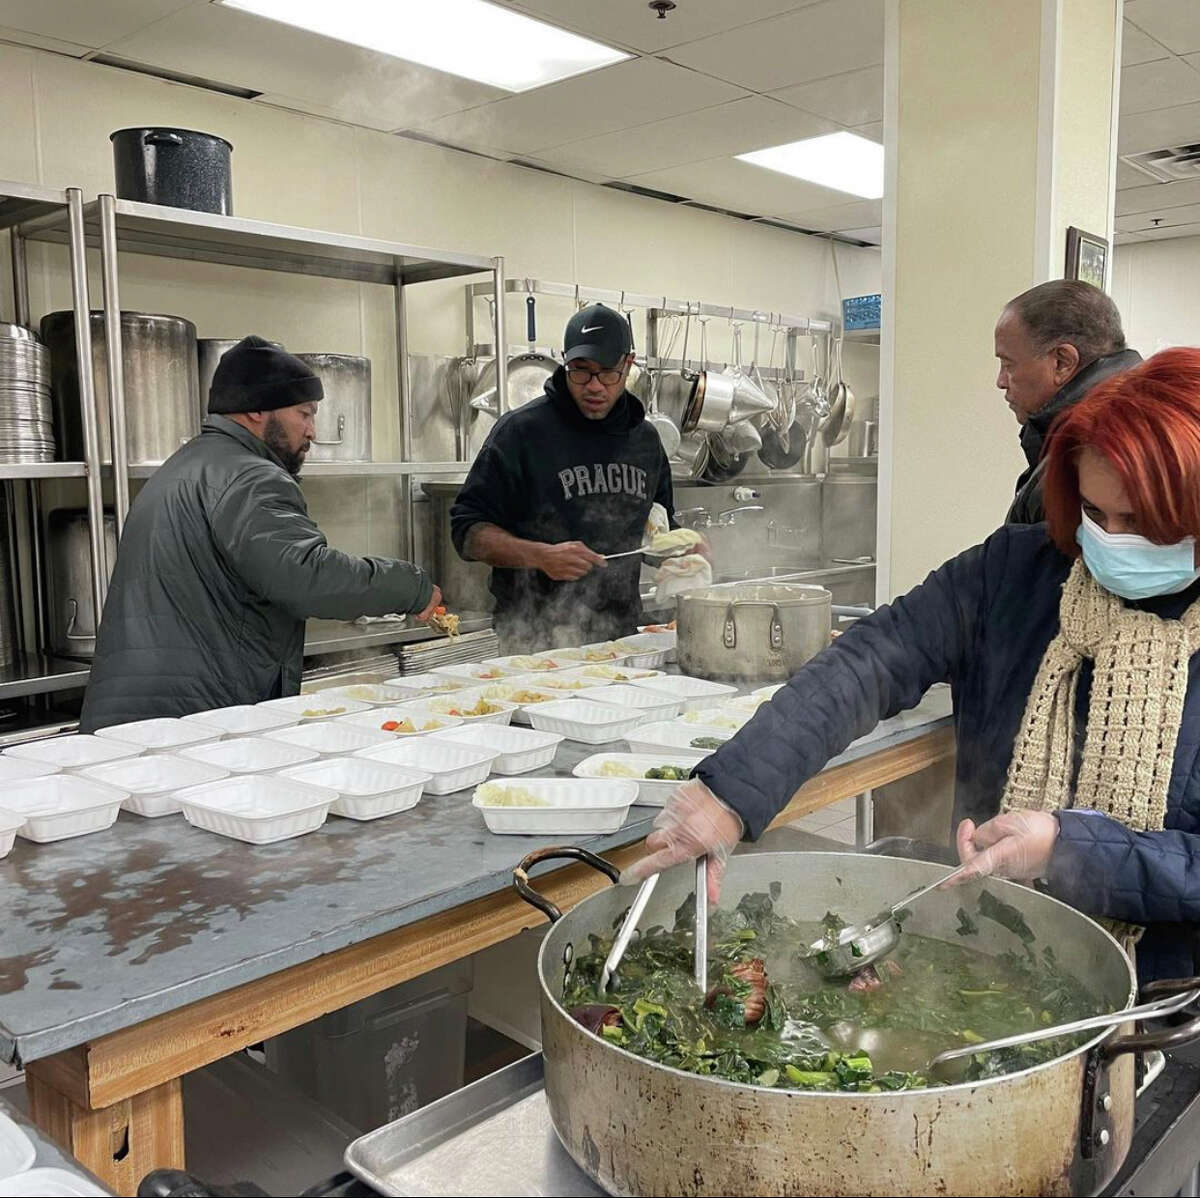 Chef Chris Williams (center) and his brother Ben Williams (left) gave meals out to Houstonians struggling during the February 2021 winter storm.